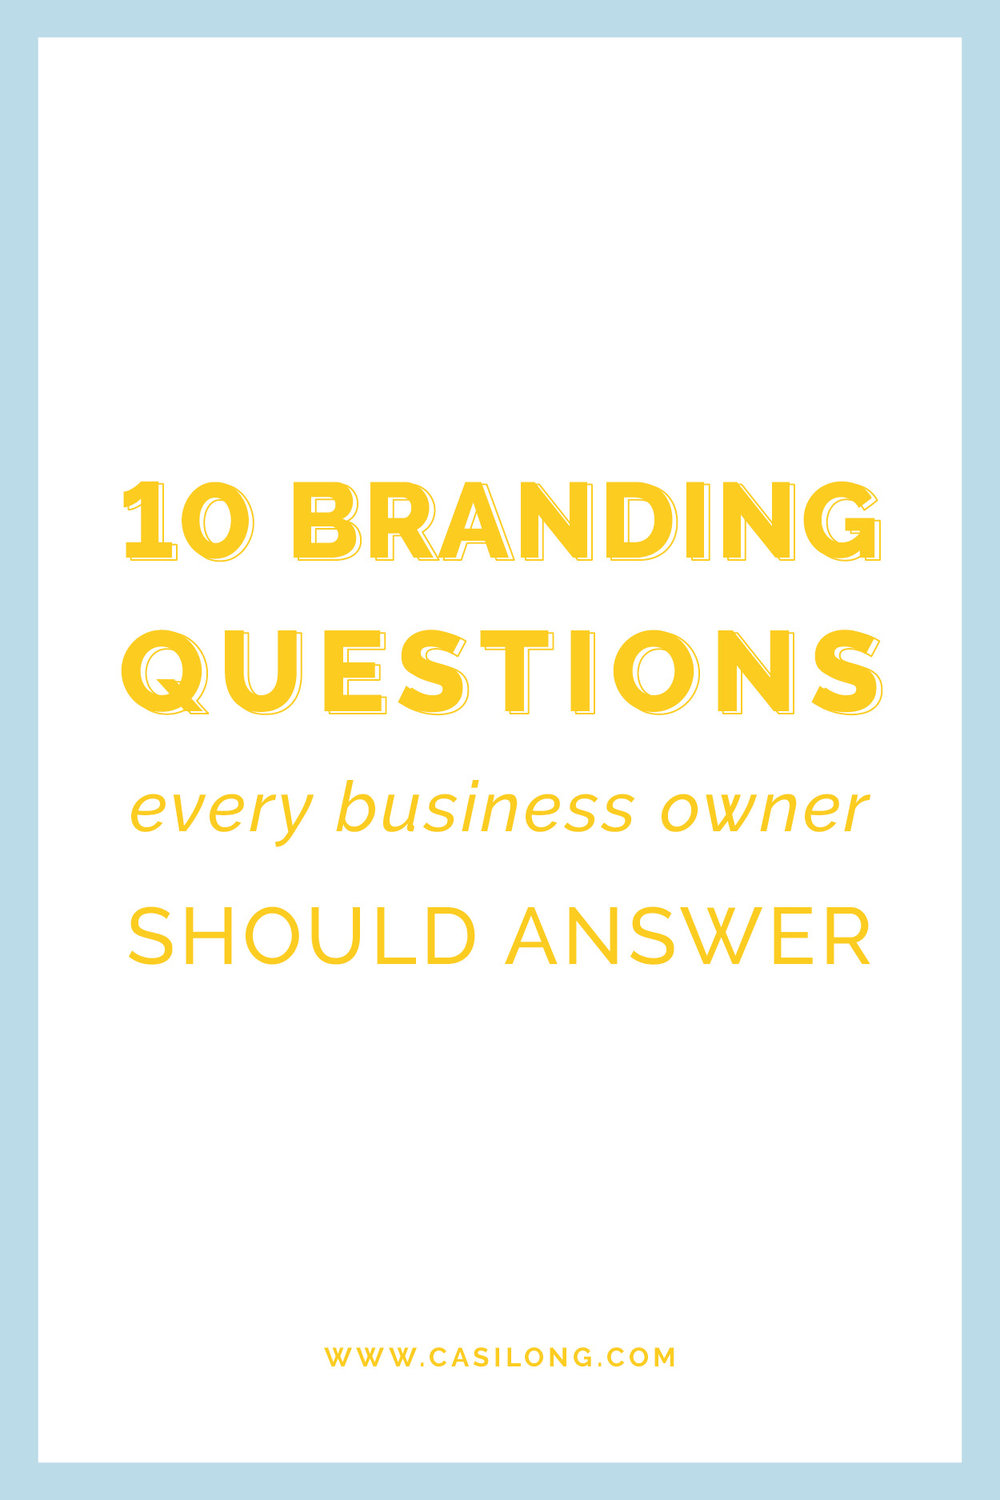 10 Branding Questions Every Business Owner Should Answer | casilong.com/blog | #casilongdesign #fearlesspursuit